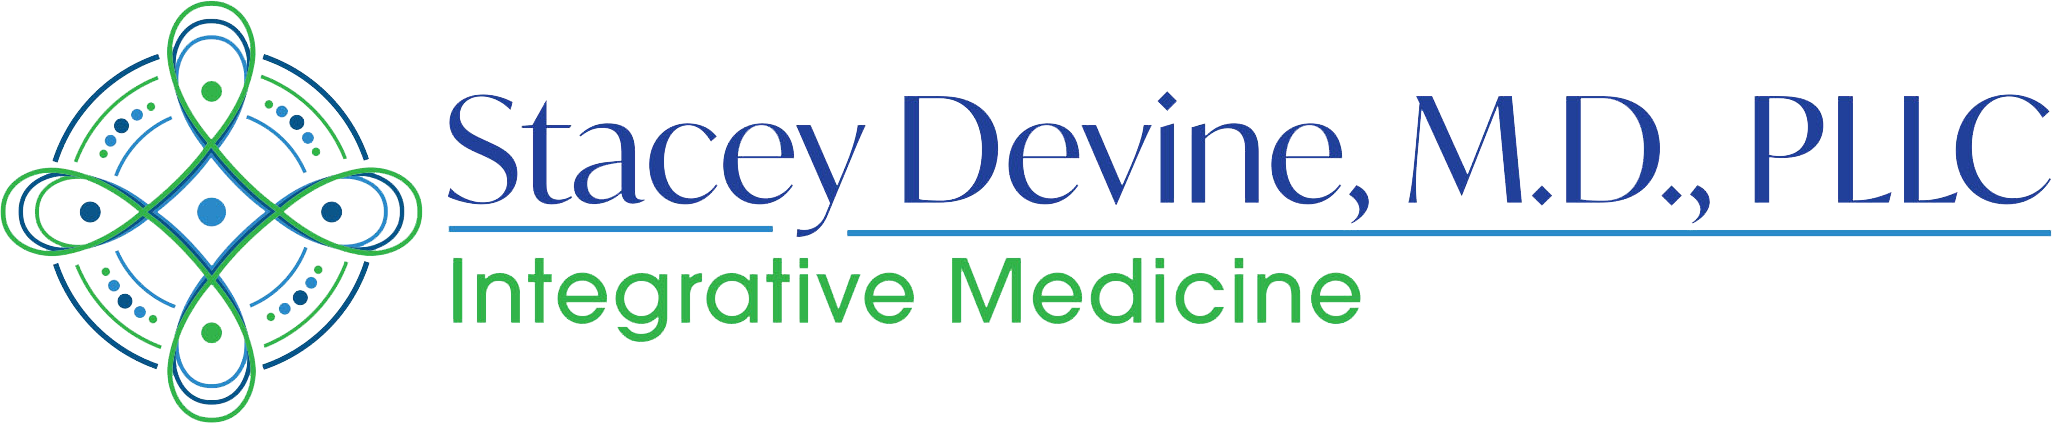 Stacey Devine, M.D., PLLC